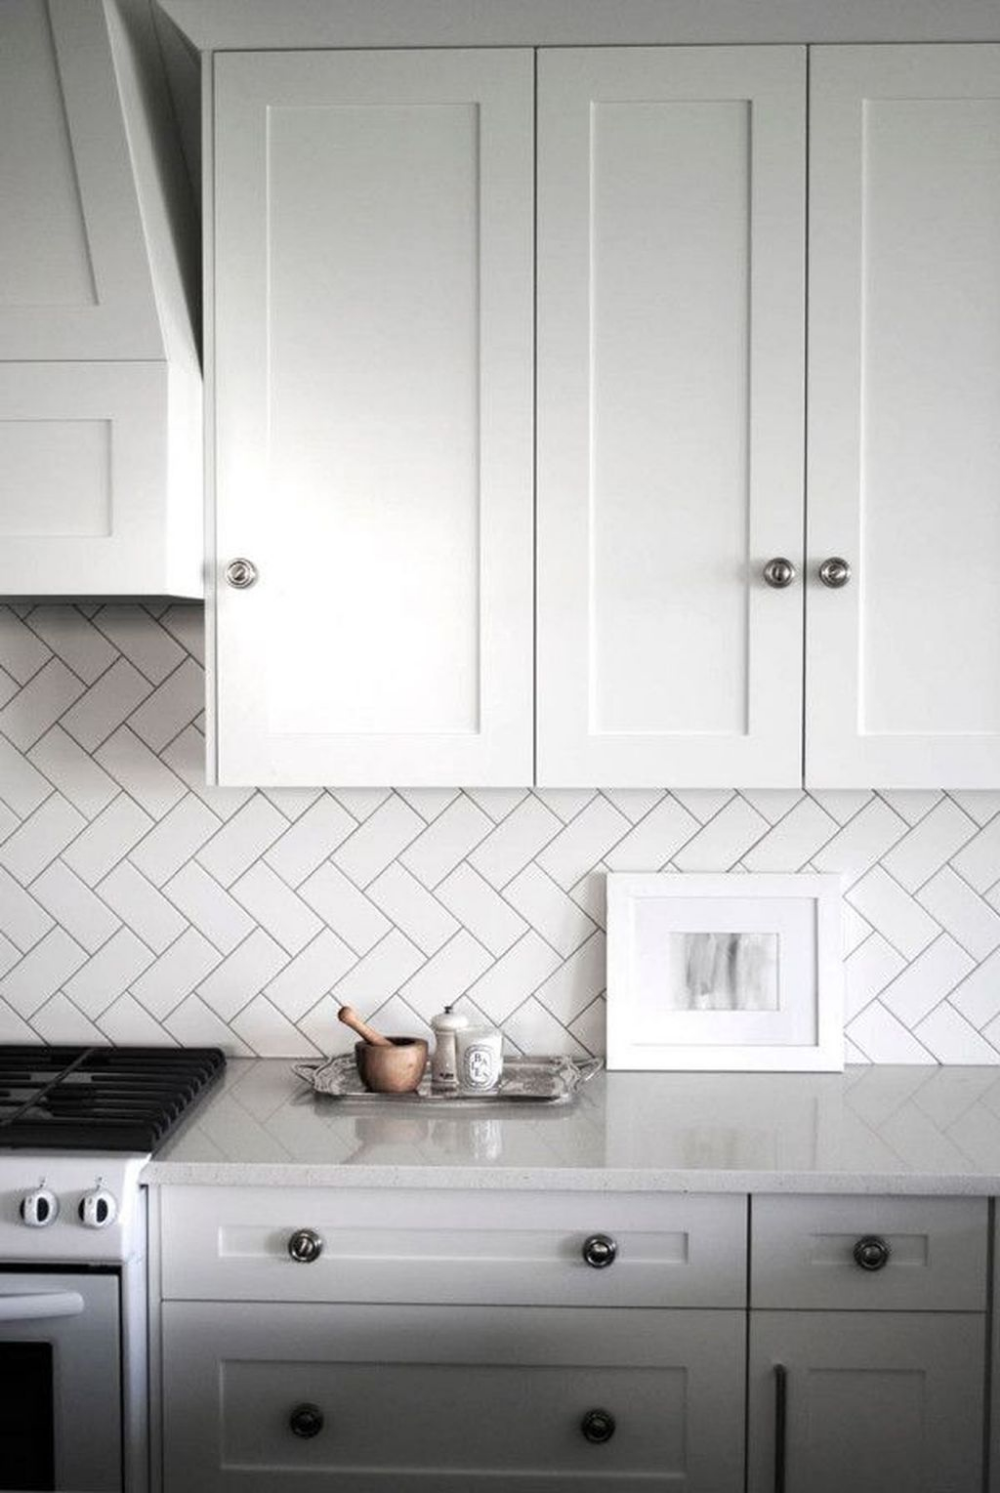 Paint for kitchen walls by emily rovner on Kitchen remodel ...